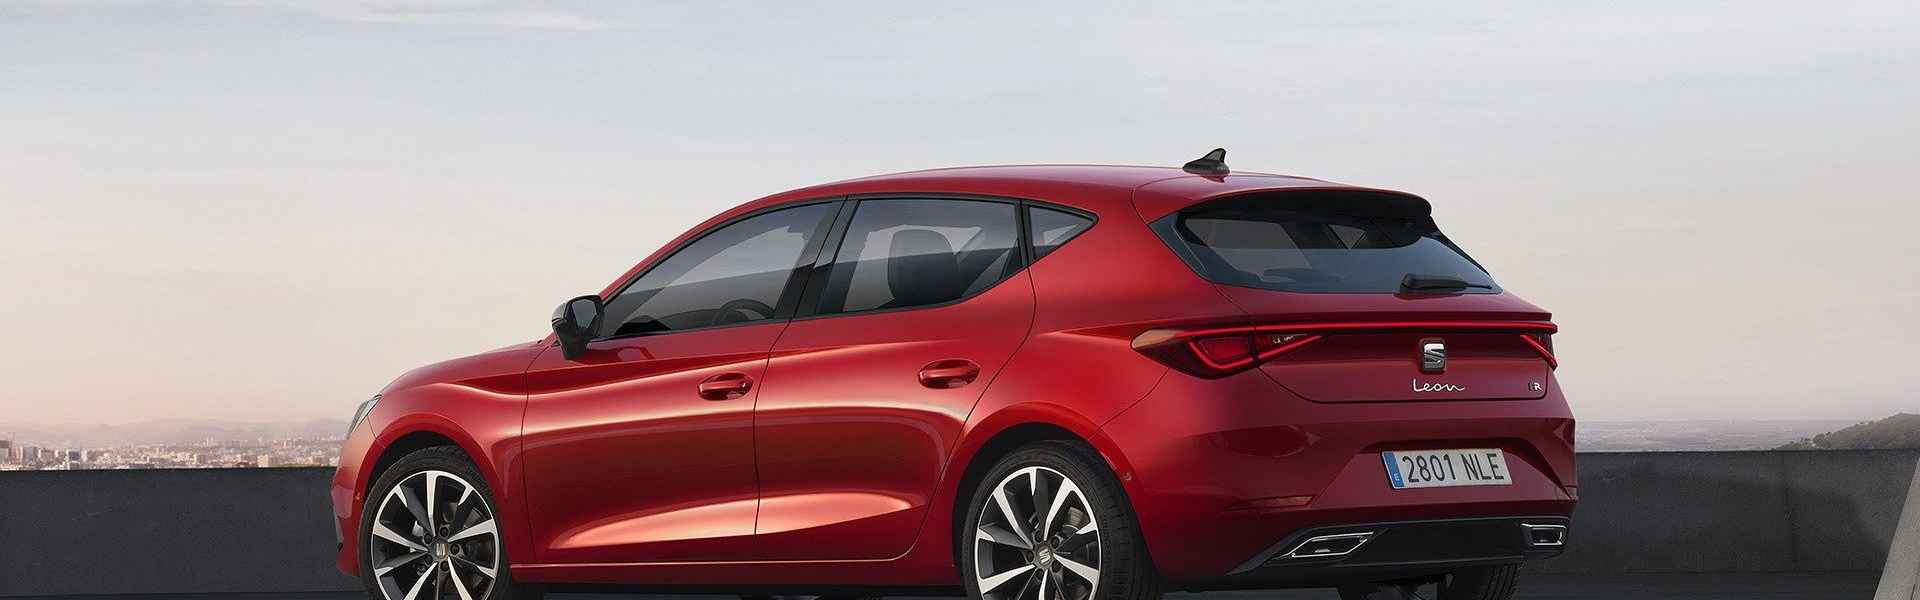 2020-Seat-Leon-Hatch-Estate-1.jpg